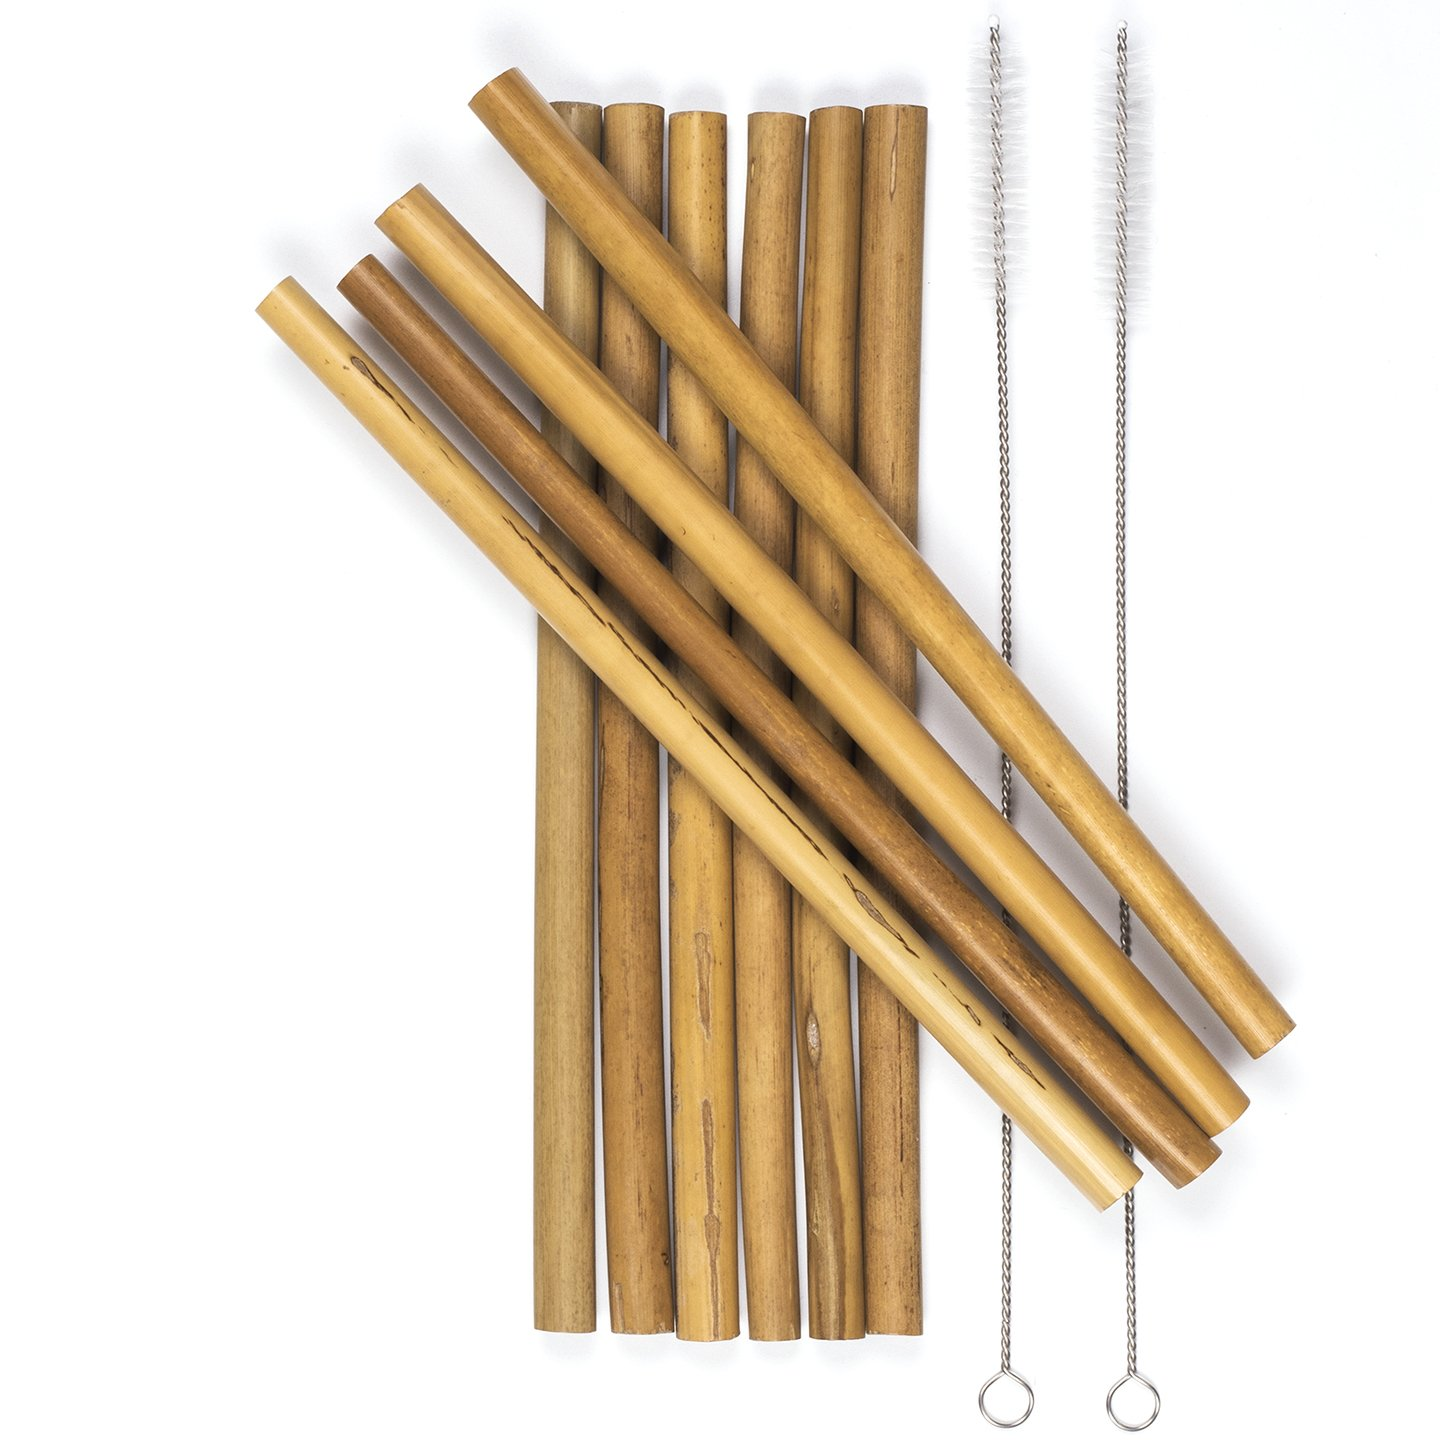 Reusable Bamboo Drinking Straws for Hot and Cold drinks, and Smoothies. Ocean Friendly. Biodegradable. Wide mouth extra-long 9-inch, 10-pack. Colors and Straw Widths Vary – Comes with 2 cleaning brush